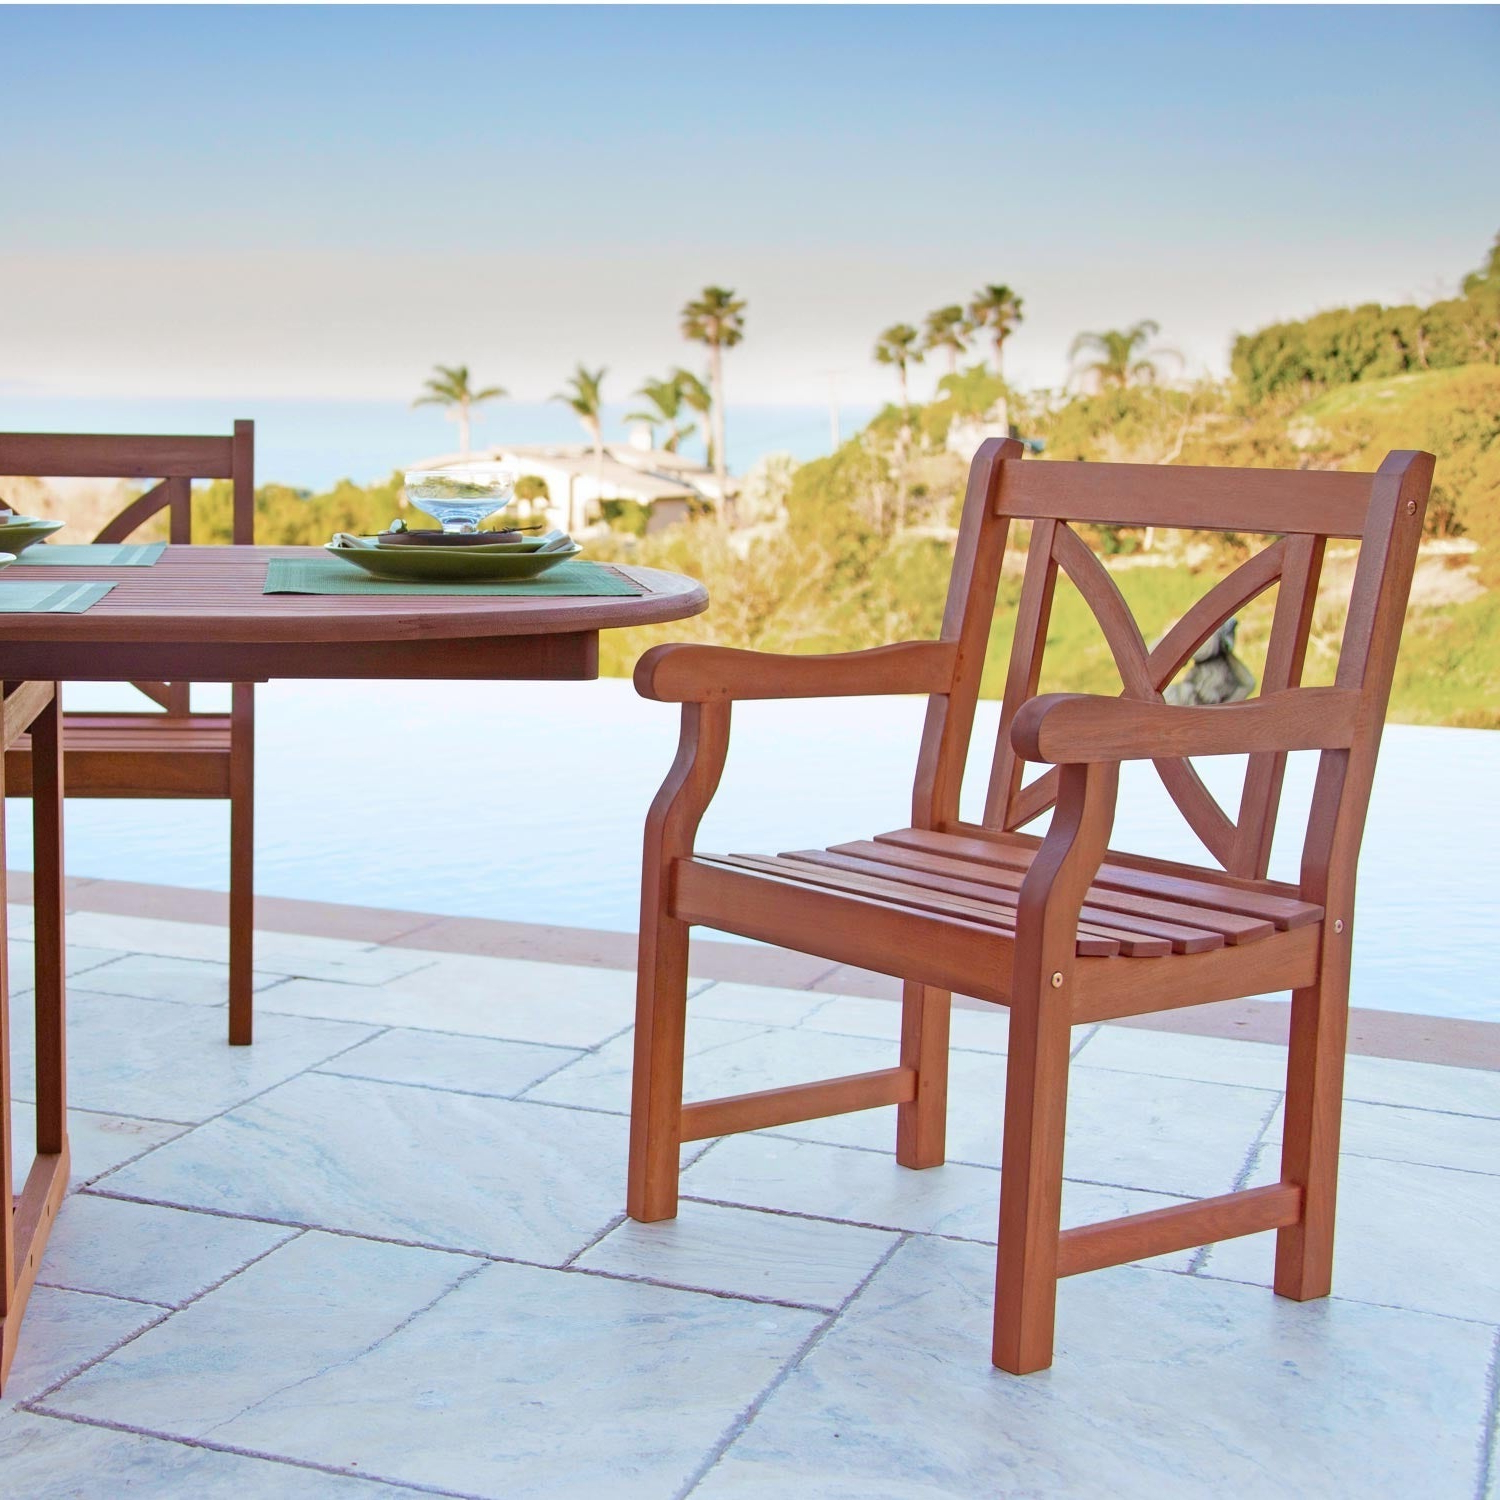 Widely Used Havenside Home Surfside Arm Chair Within Havenside Home Surfside Outdoor Lounge Chairs (Gallery 6 of 25)